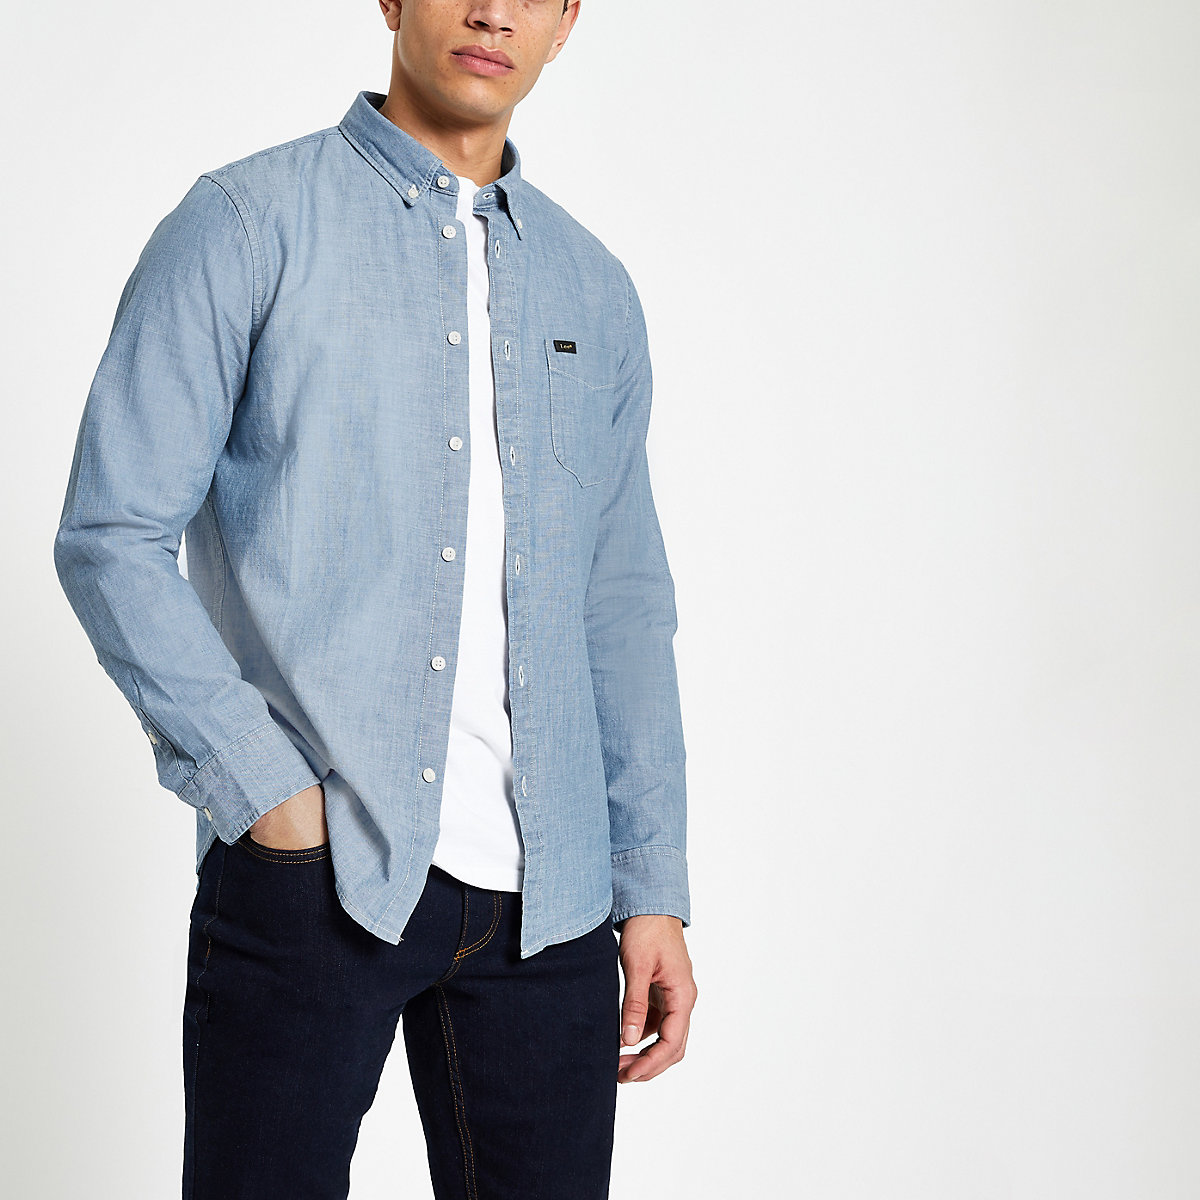 Lee light blue button down denim shirt